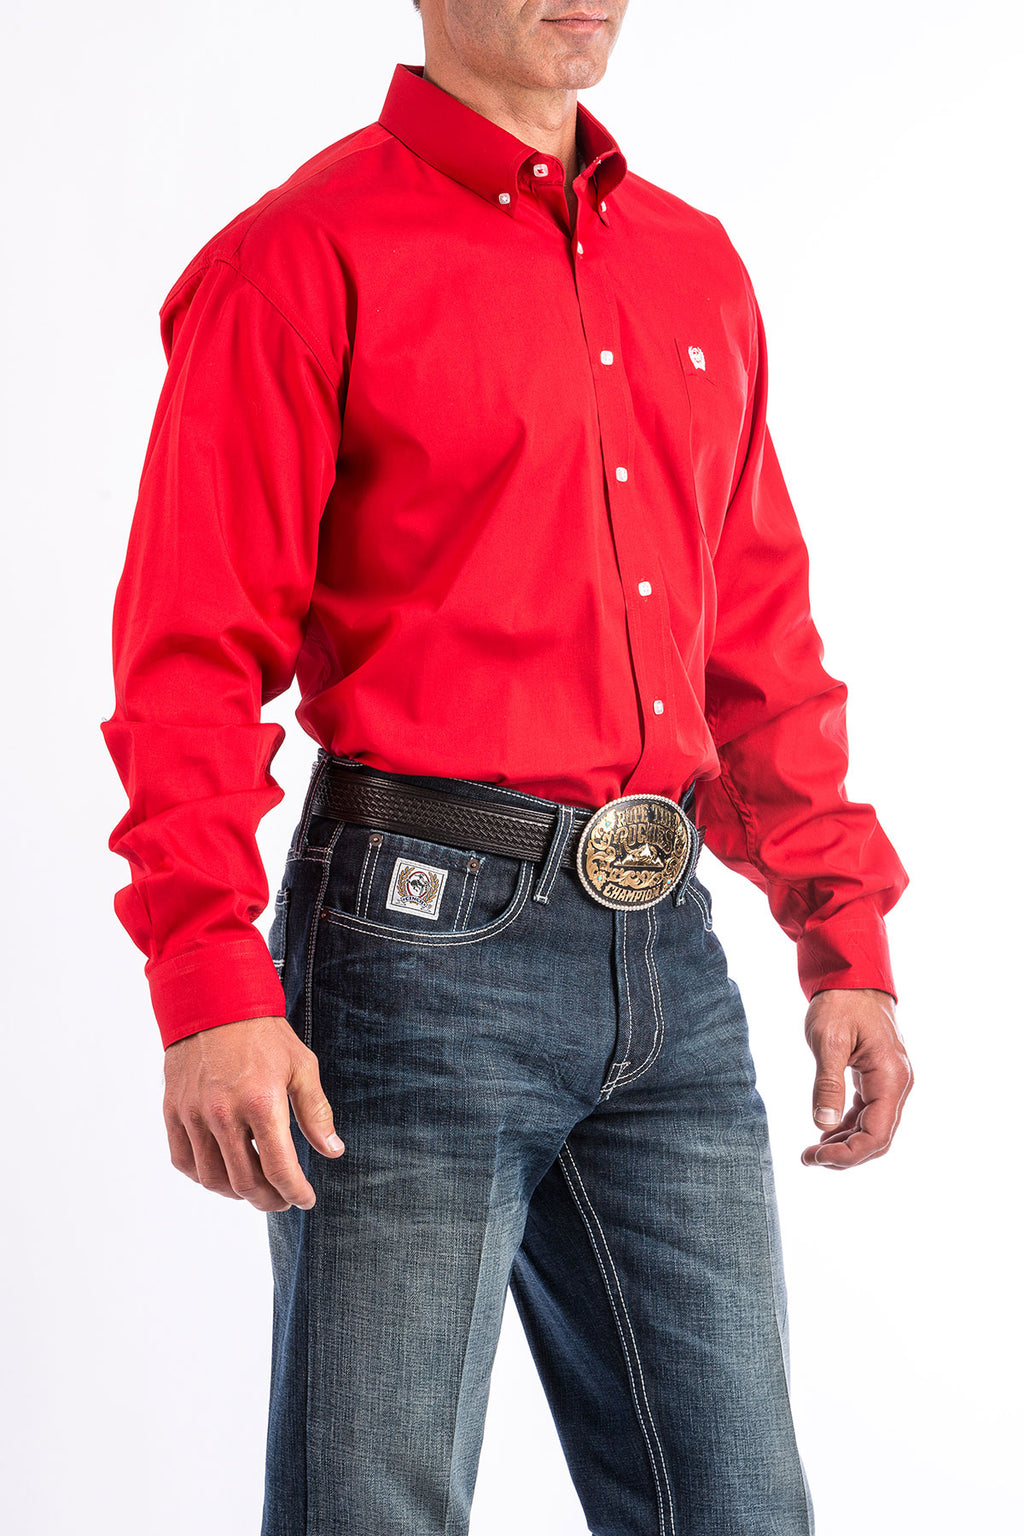 CINCH Men's Solid Red Button Down - The Tillie Rose Boutique